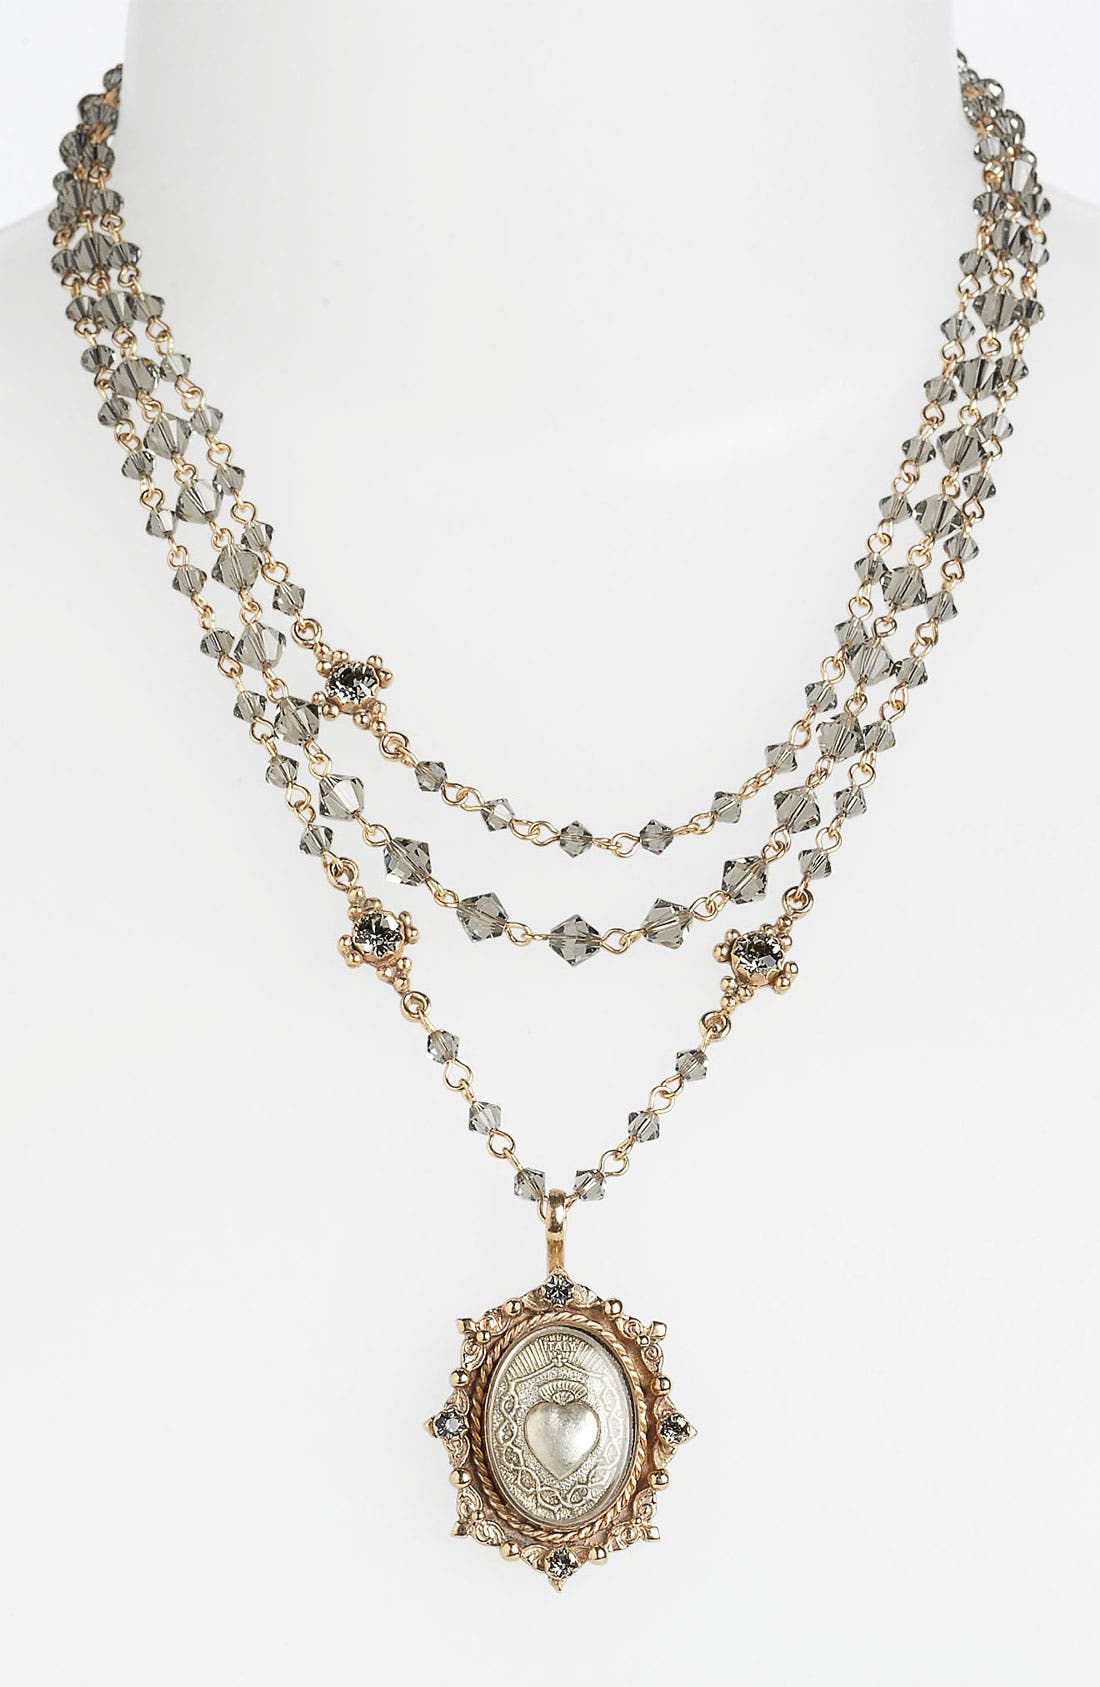 Main Image - Virgins Saints and Angels 'Oval Magdalena' Necklace (Nordstrom Exclusive)